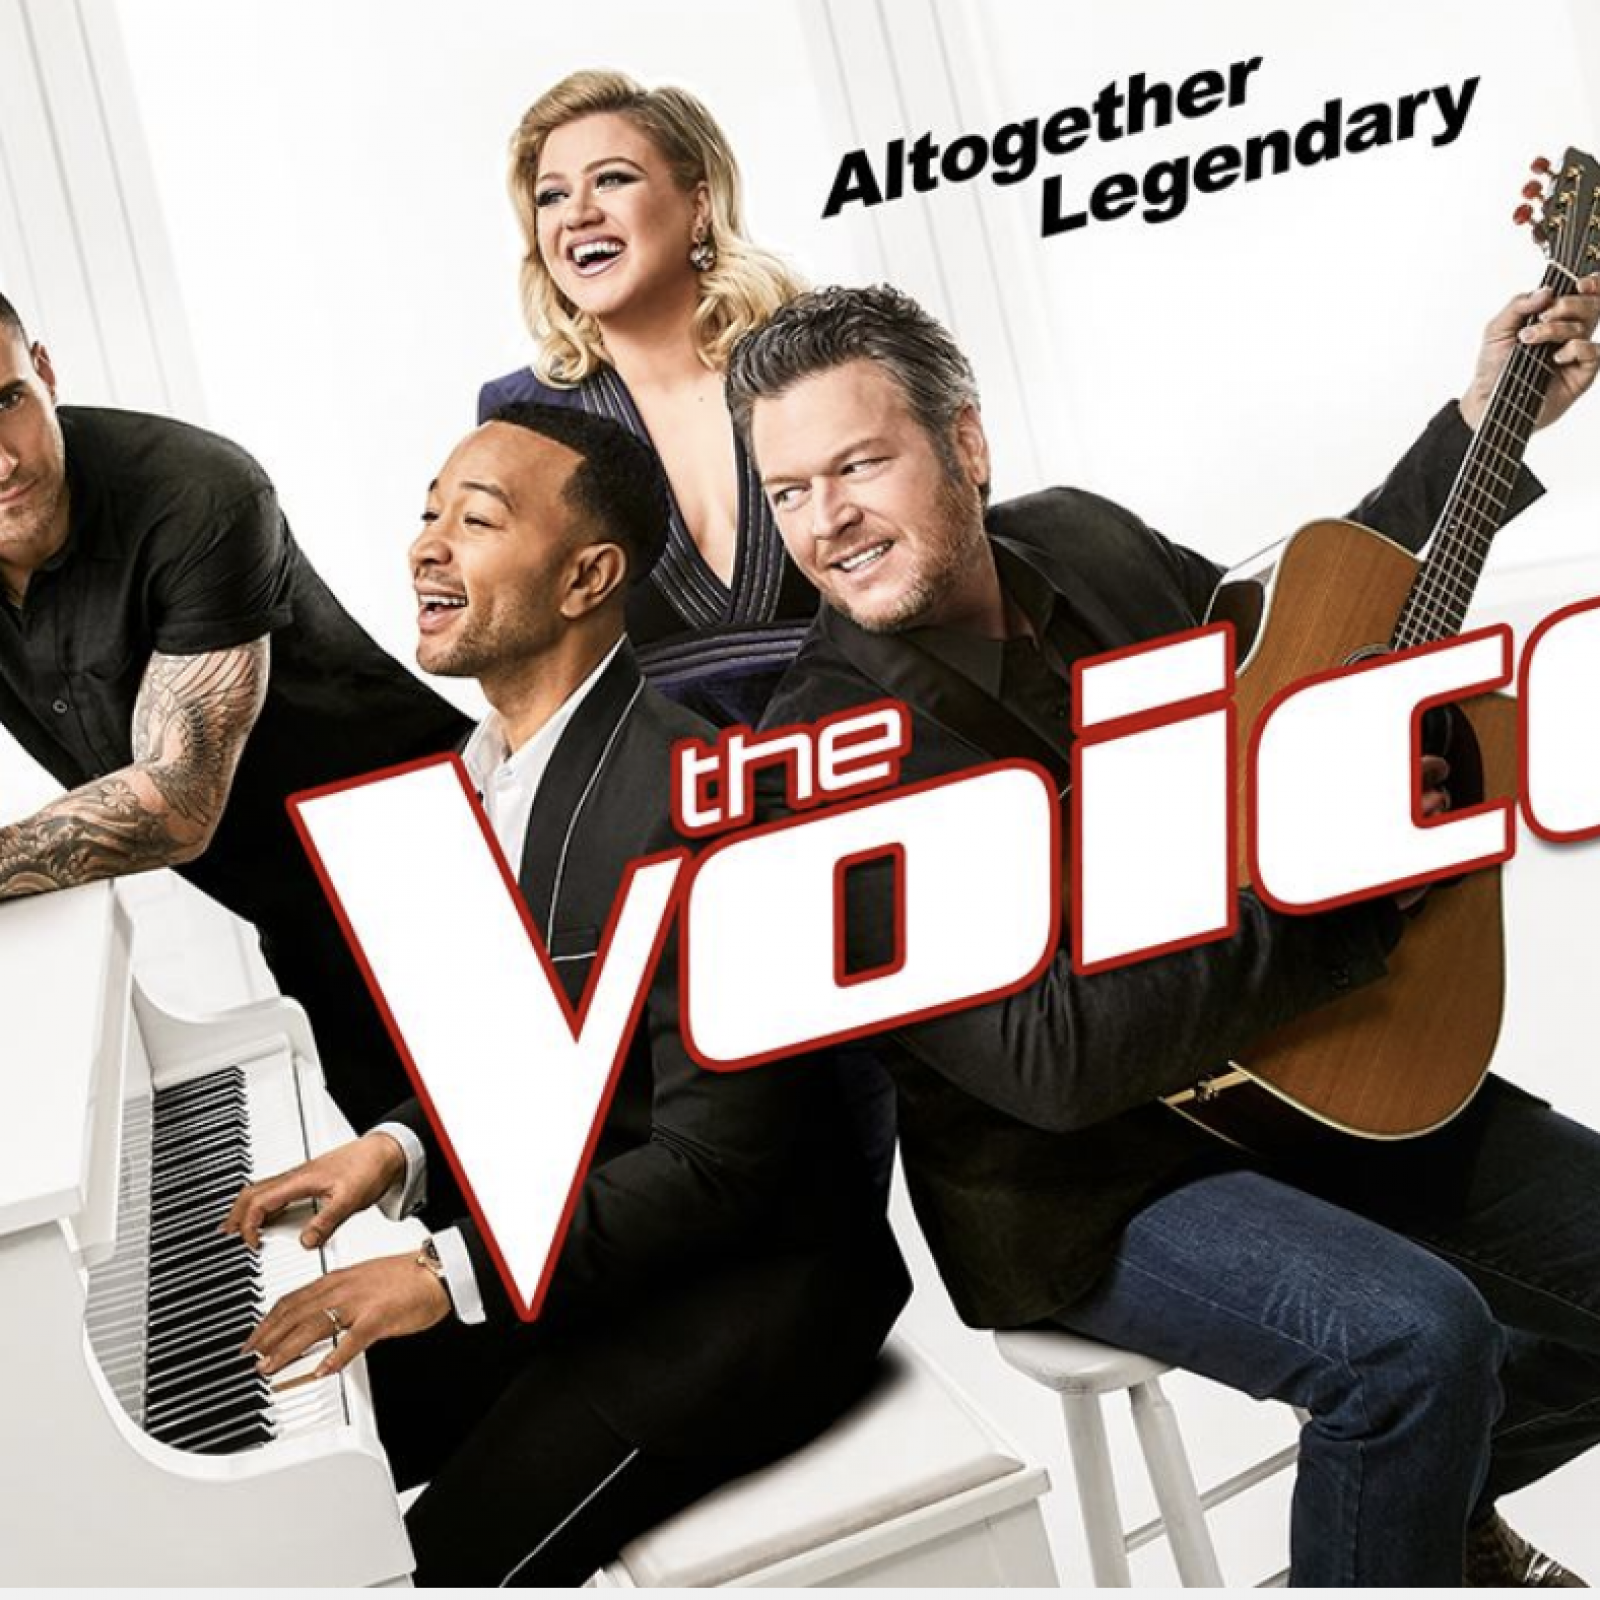 iTunes Top 100 List Hints at 'The Voice' 2019 Top 13 Winners